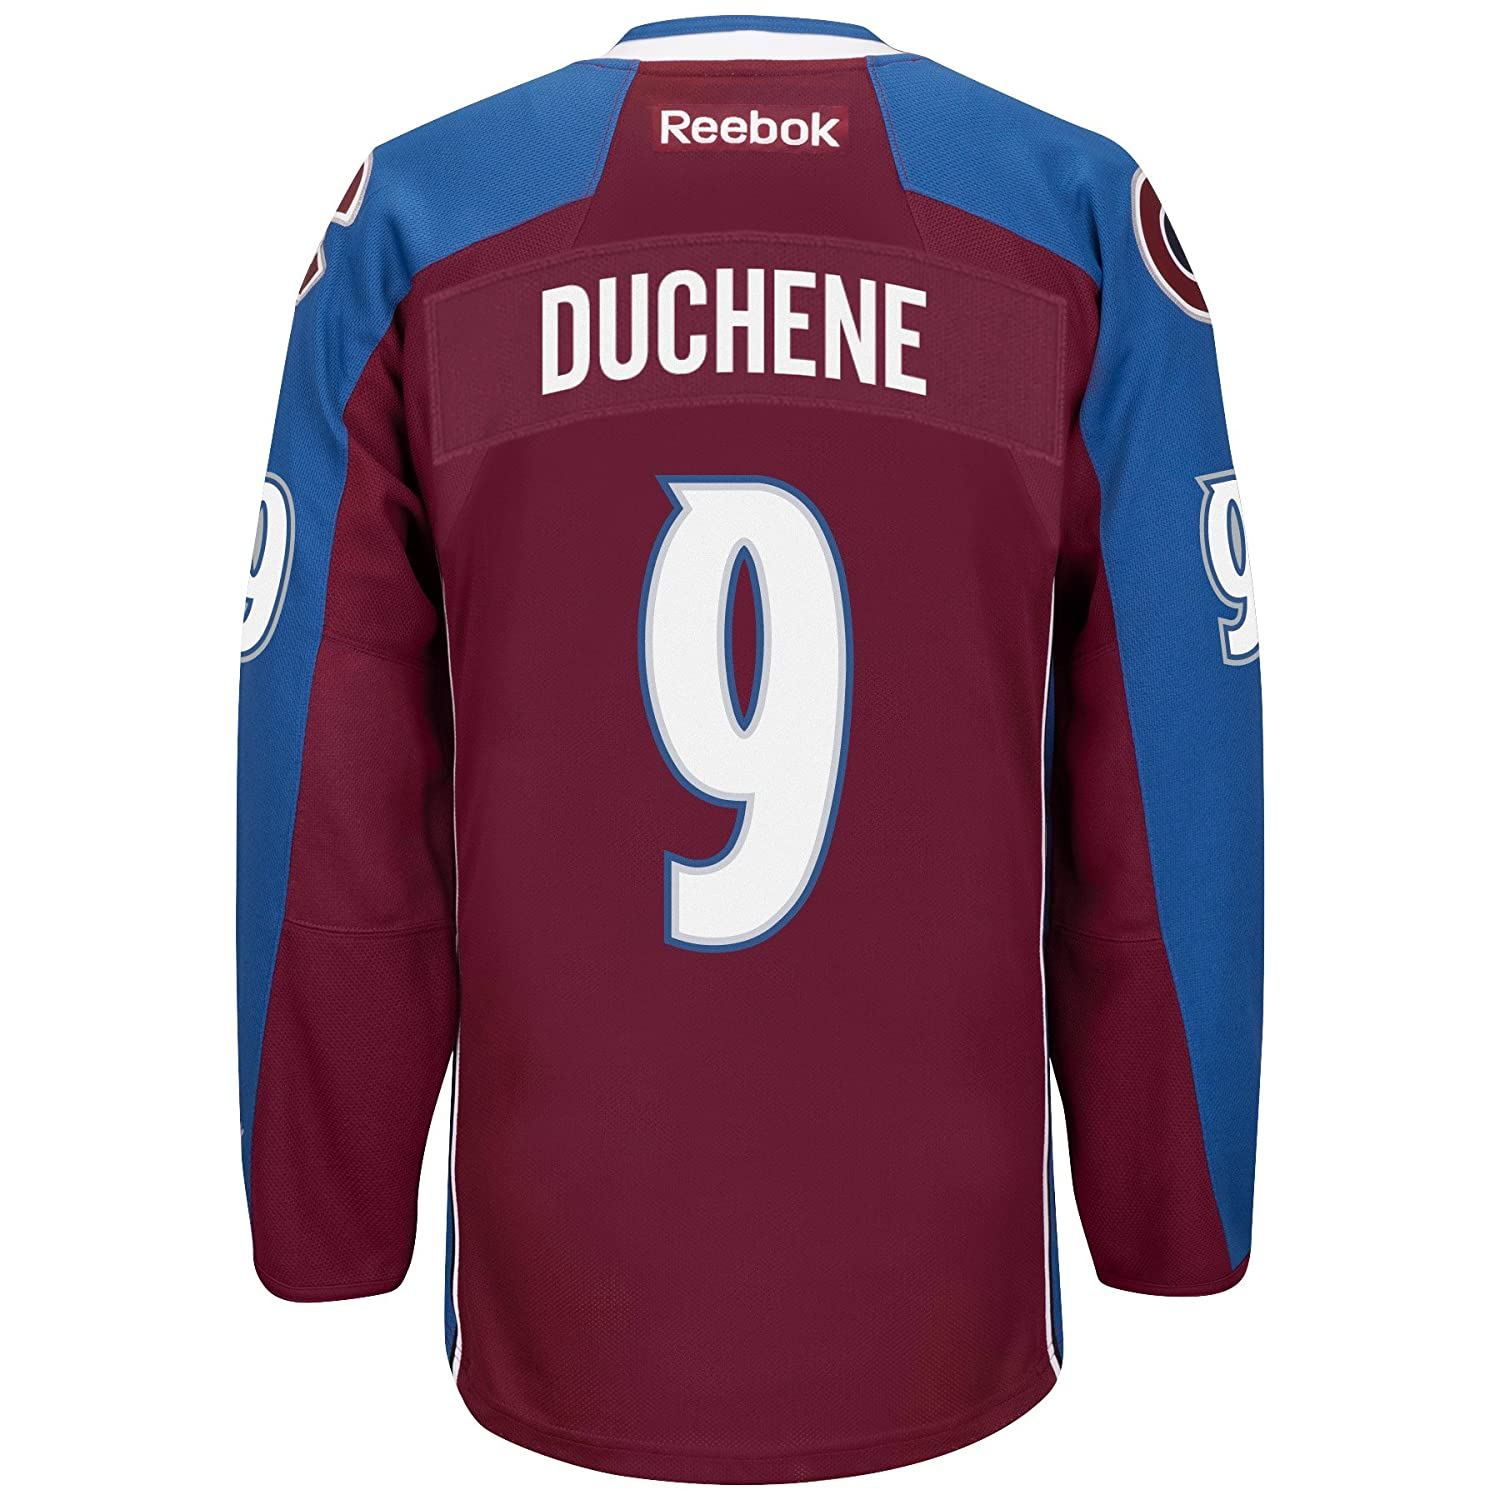 Amazon.com   Reebok Matt Duchene Colorado Avalanche NHL Burgundy Official  Premier Home Jersey Men   Sports   Outdoors 892cb49e2